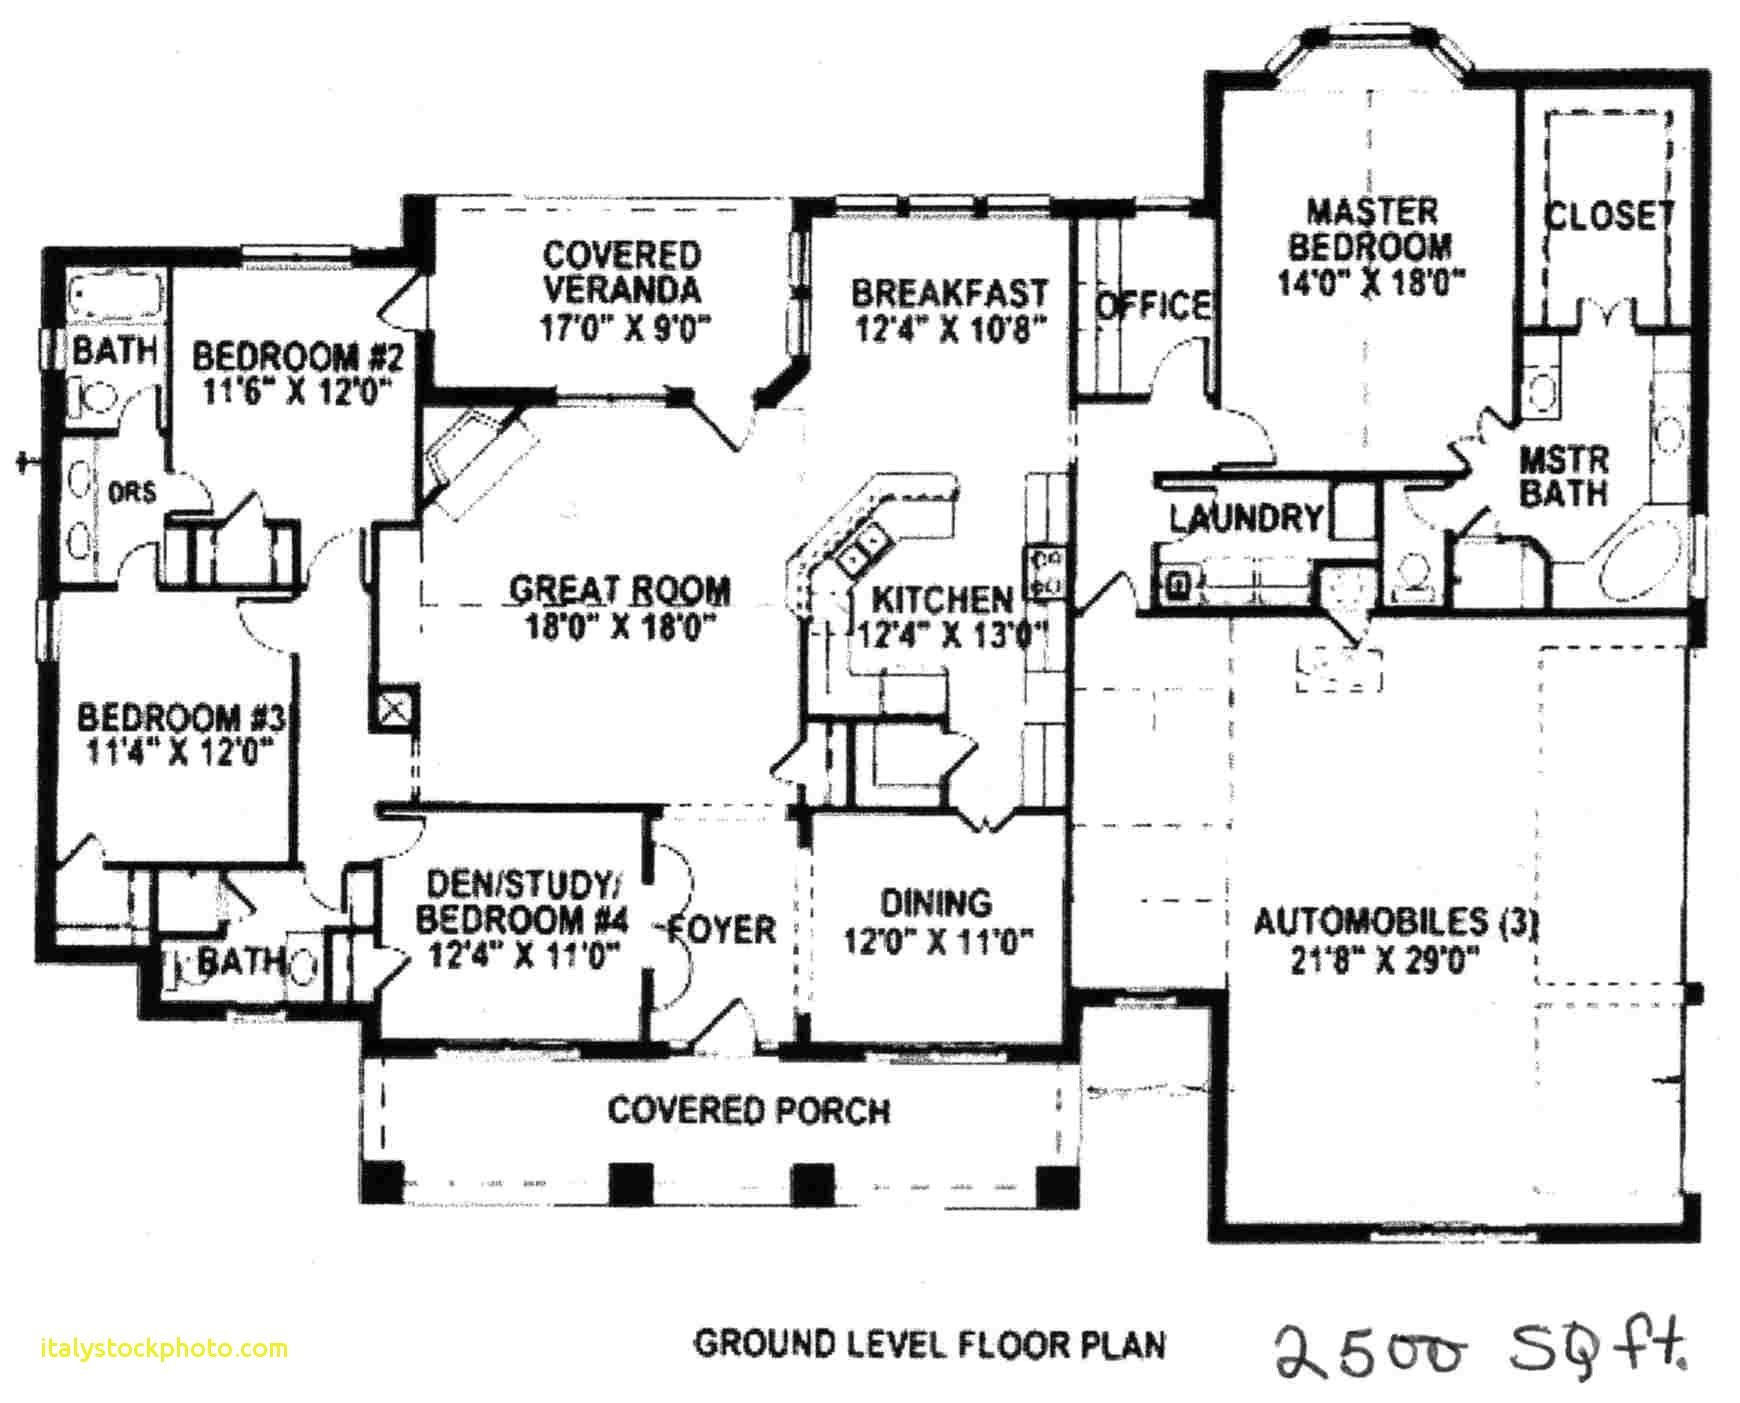 4 bedroom house plans under 2500 sq ft